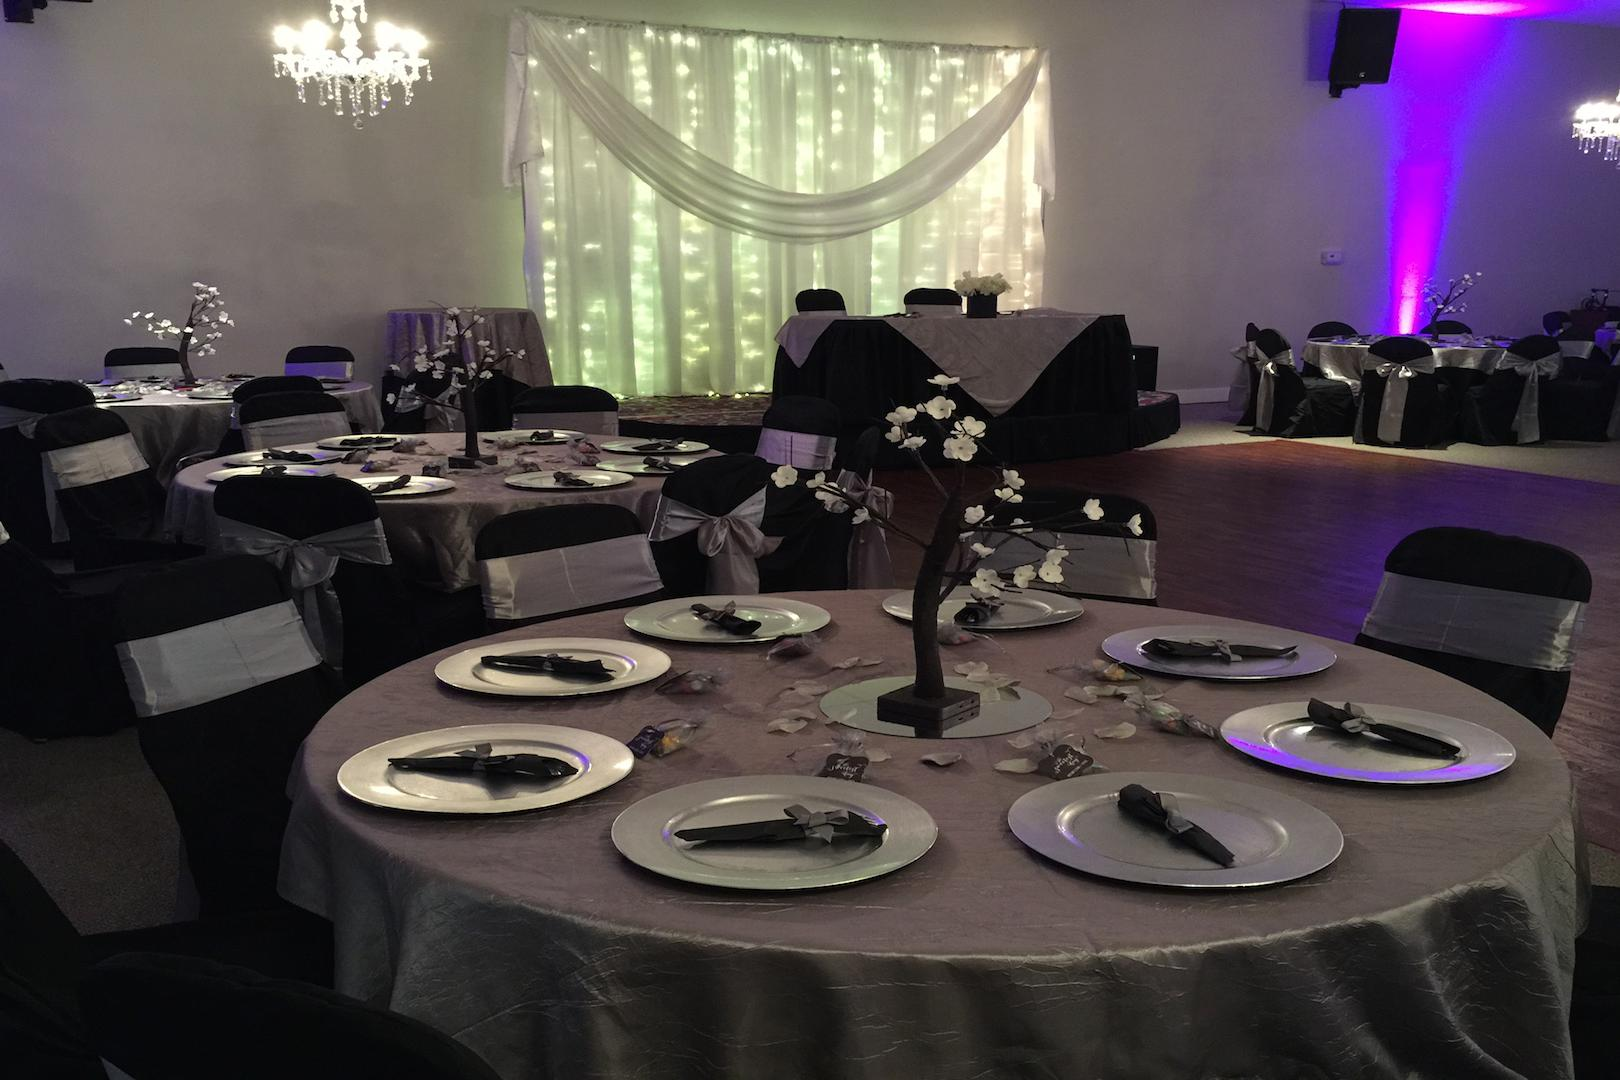 space at Prestige Banquet & Event Center